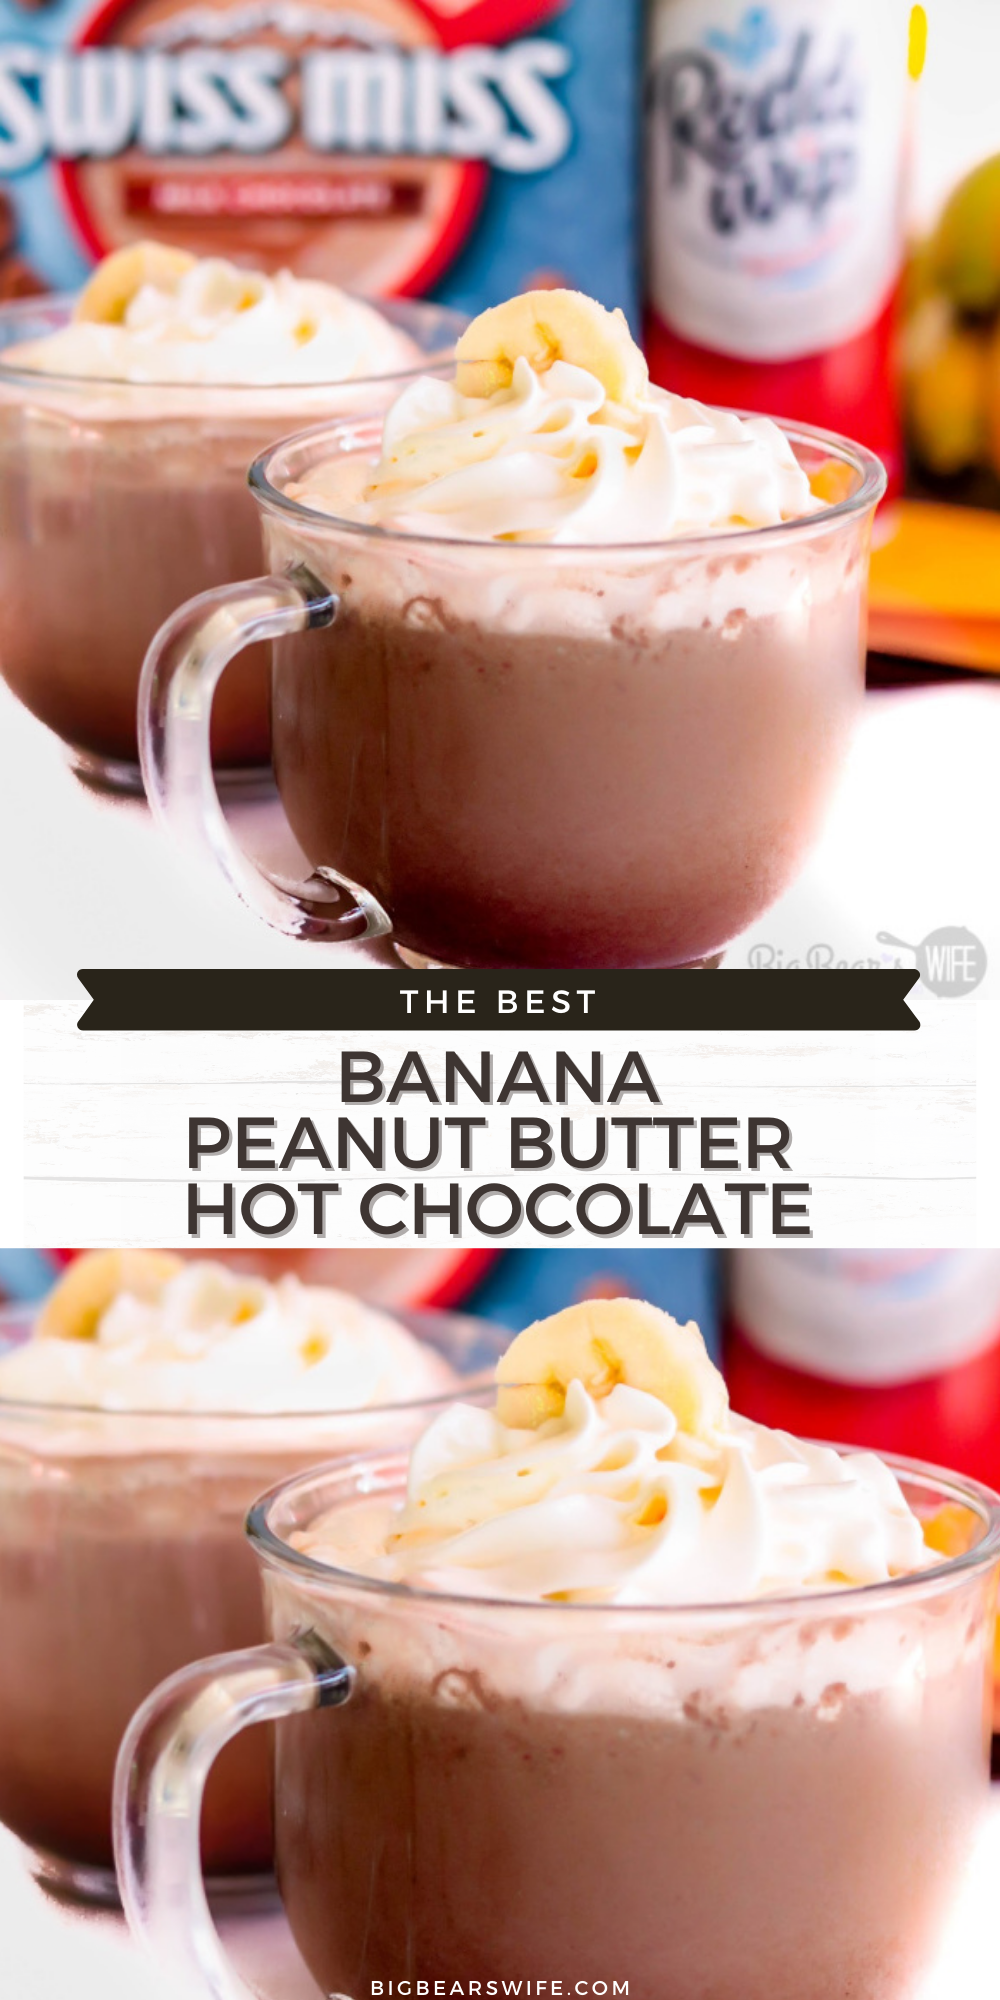 """Snuggle up with a big mug of this Banana Peanut Butter Hot Chocolate for the perfect """"Cozy in a Cup"""" sweet treat!     via @bigbearswife"""